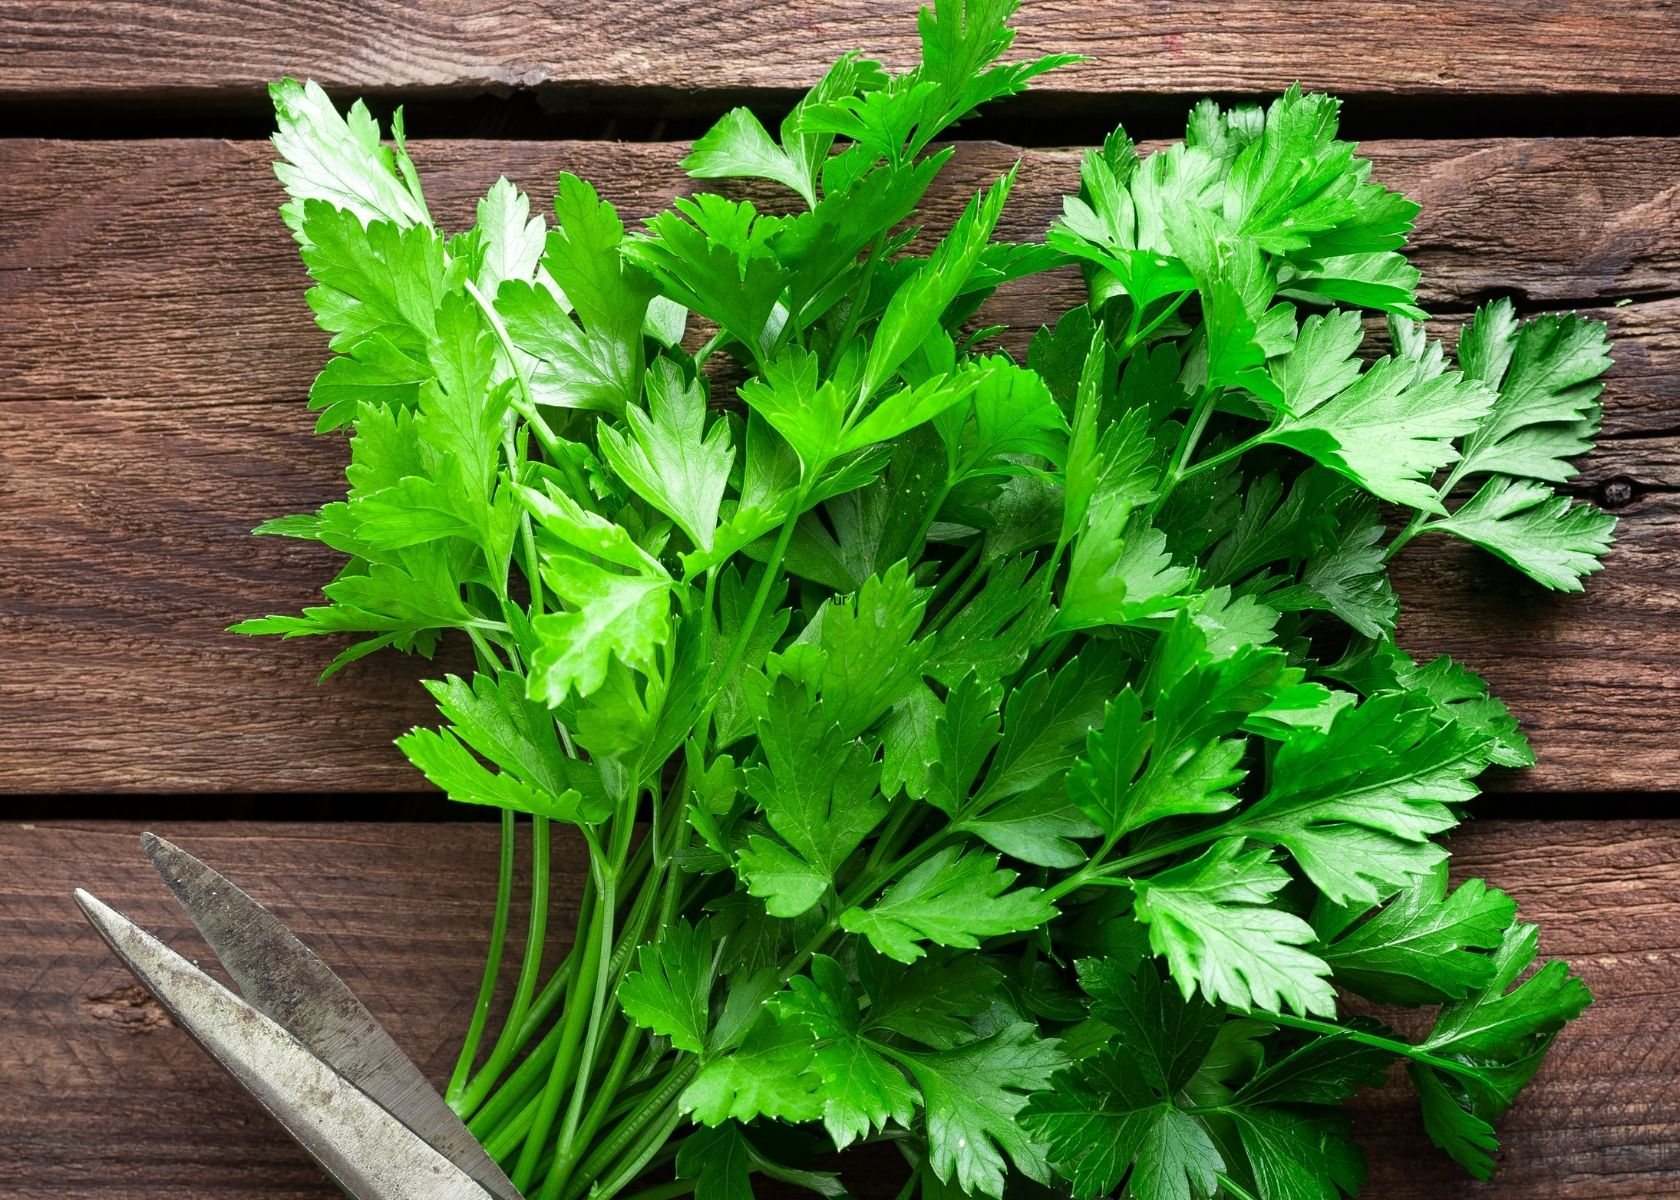 Bunch of fresh parsley on rustic wooden table.